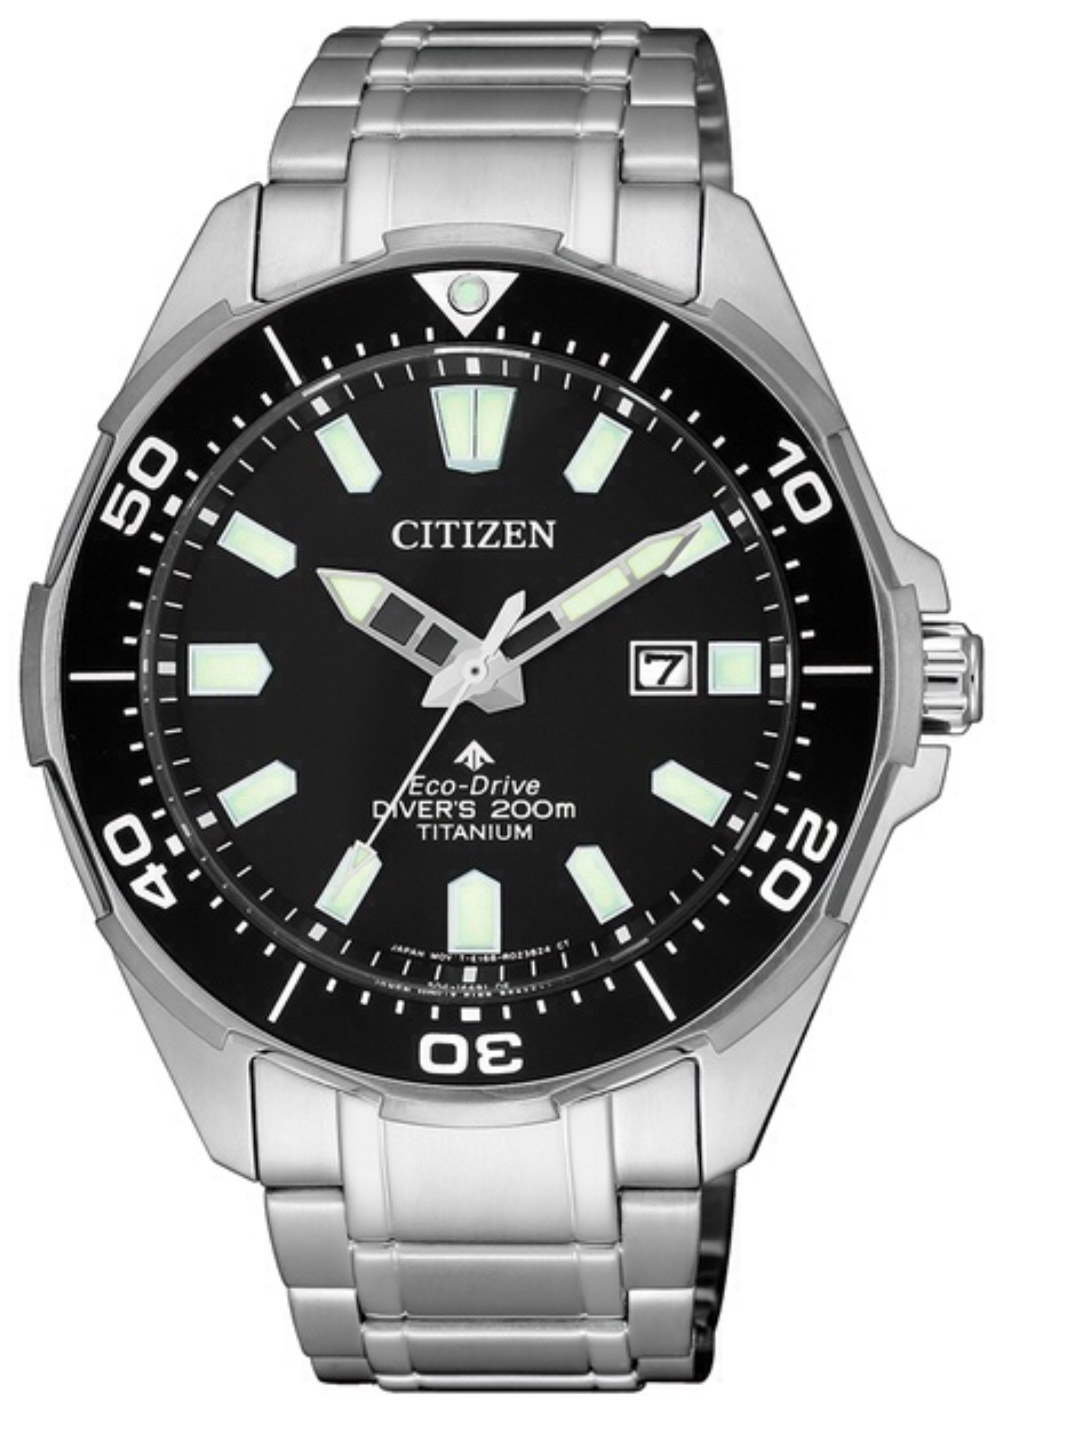 Citizen Diver's Supertitanio - Quadrante nero, cassa e bracciale Supertitanio